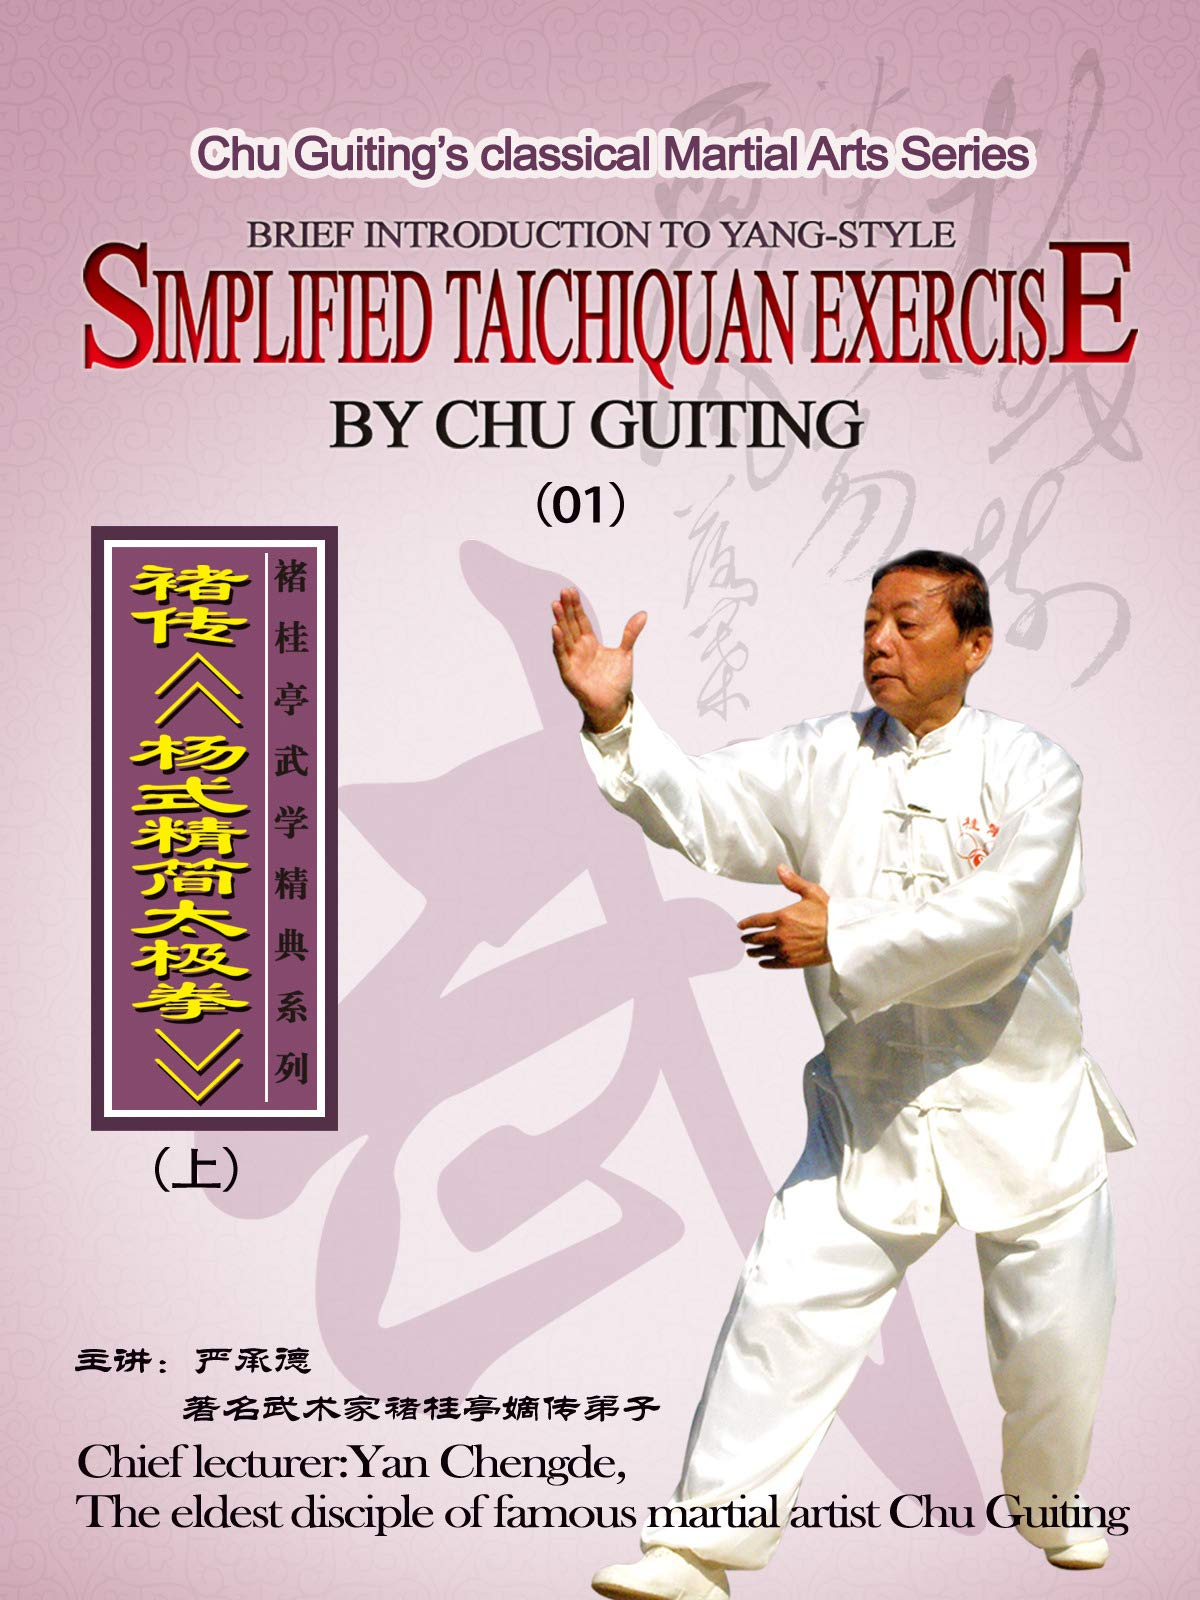 Chu Guiting's classical Martial Arts Series-Brief Introduction to Yang-style Simplified Taichiquan Exercise by Chu Guiting 01